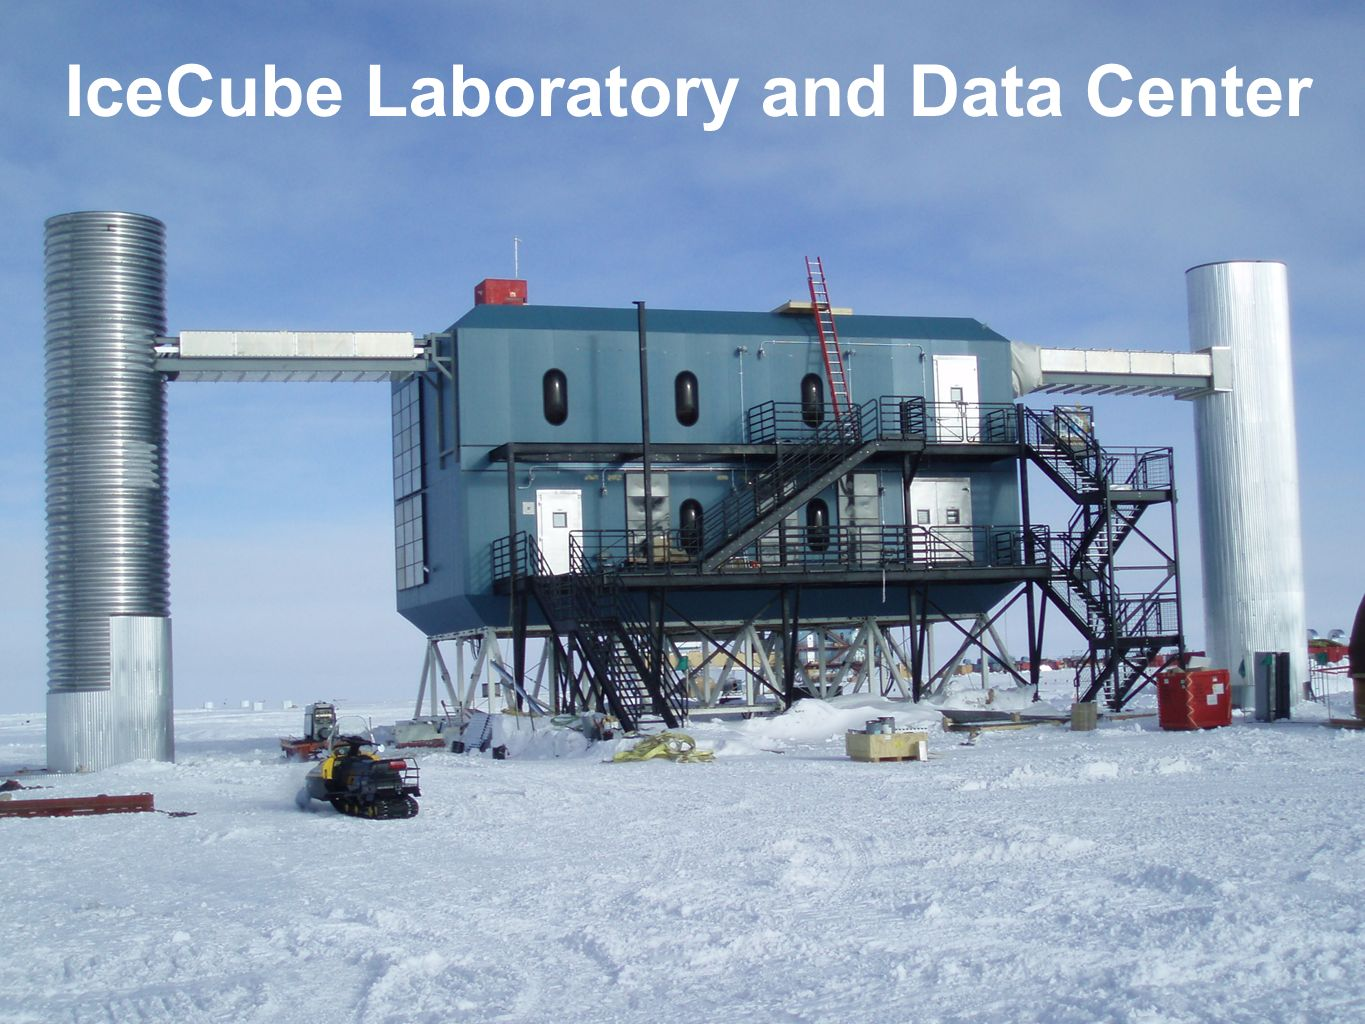 IceCube Laboratory and Data Center